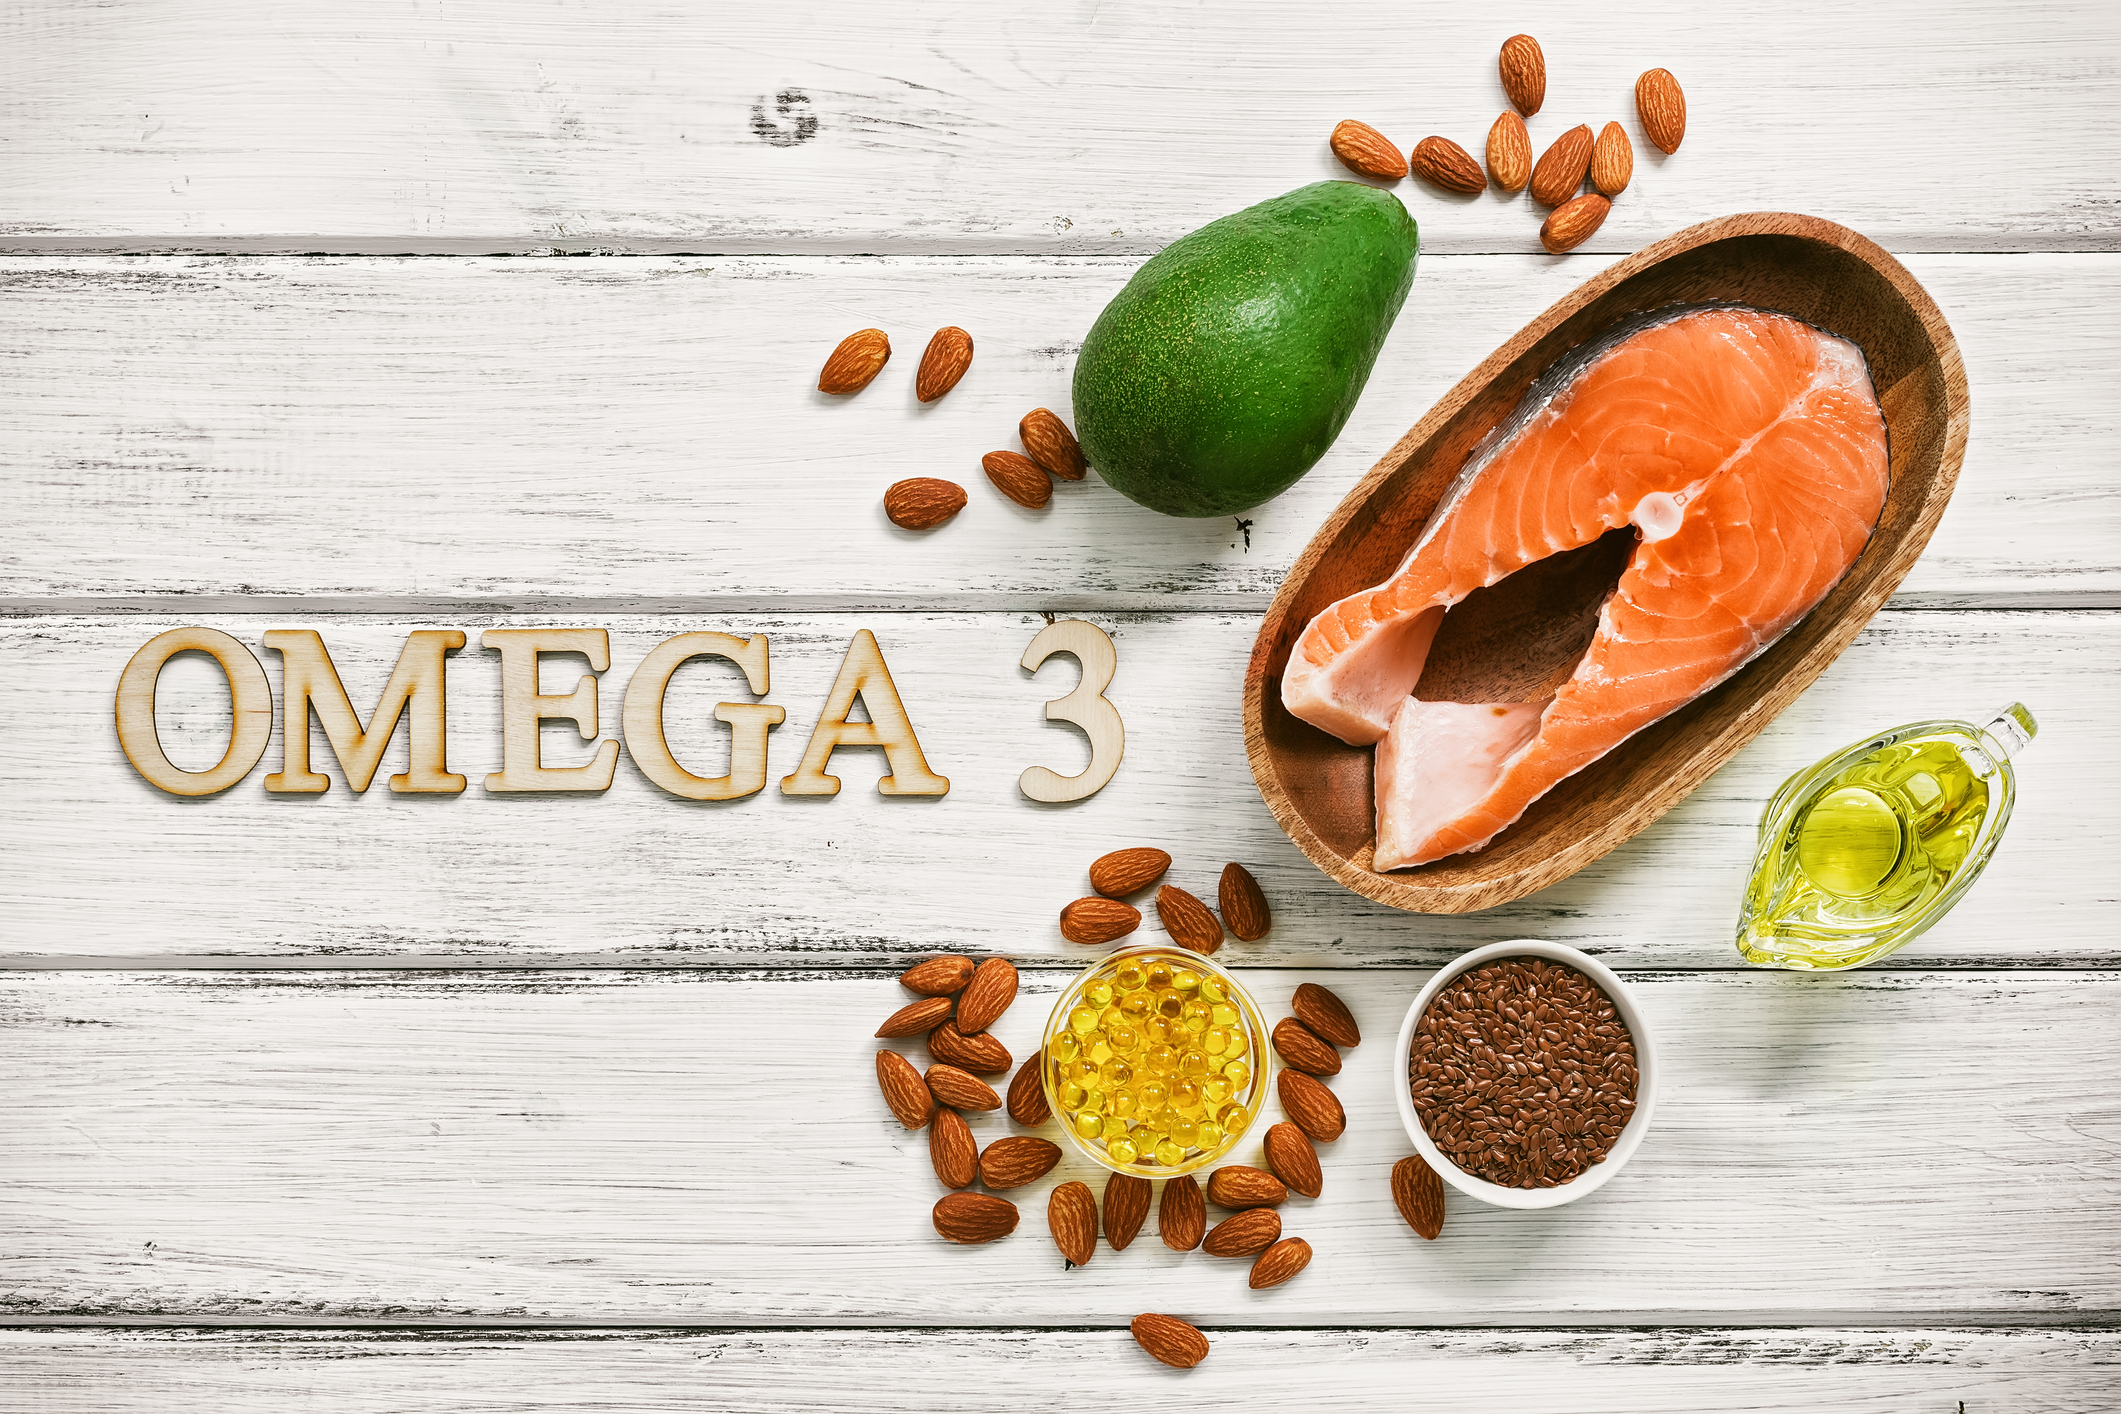 Higher omega-3 levels may lower COVID-19 death risk